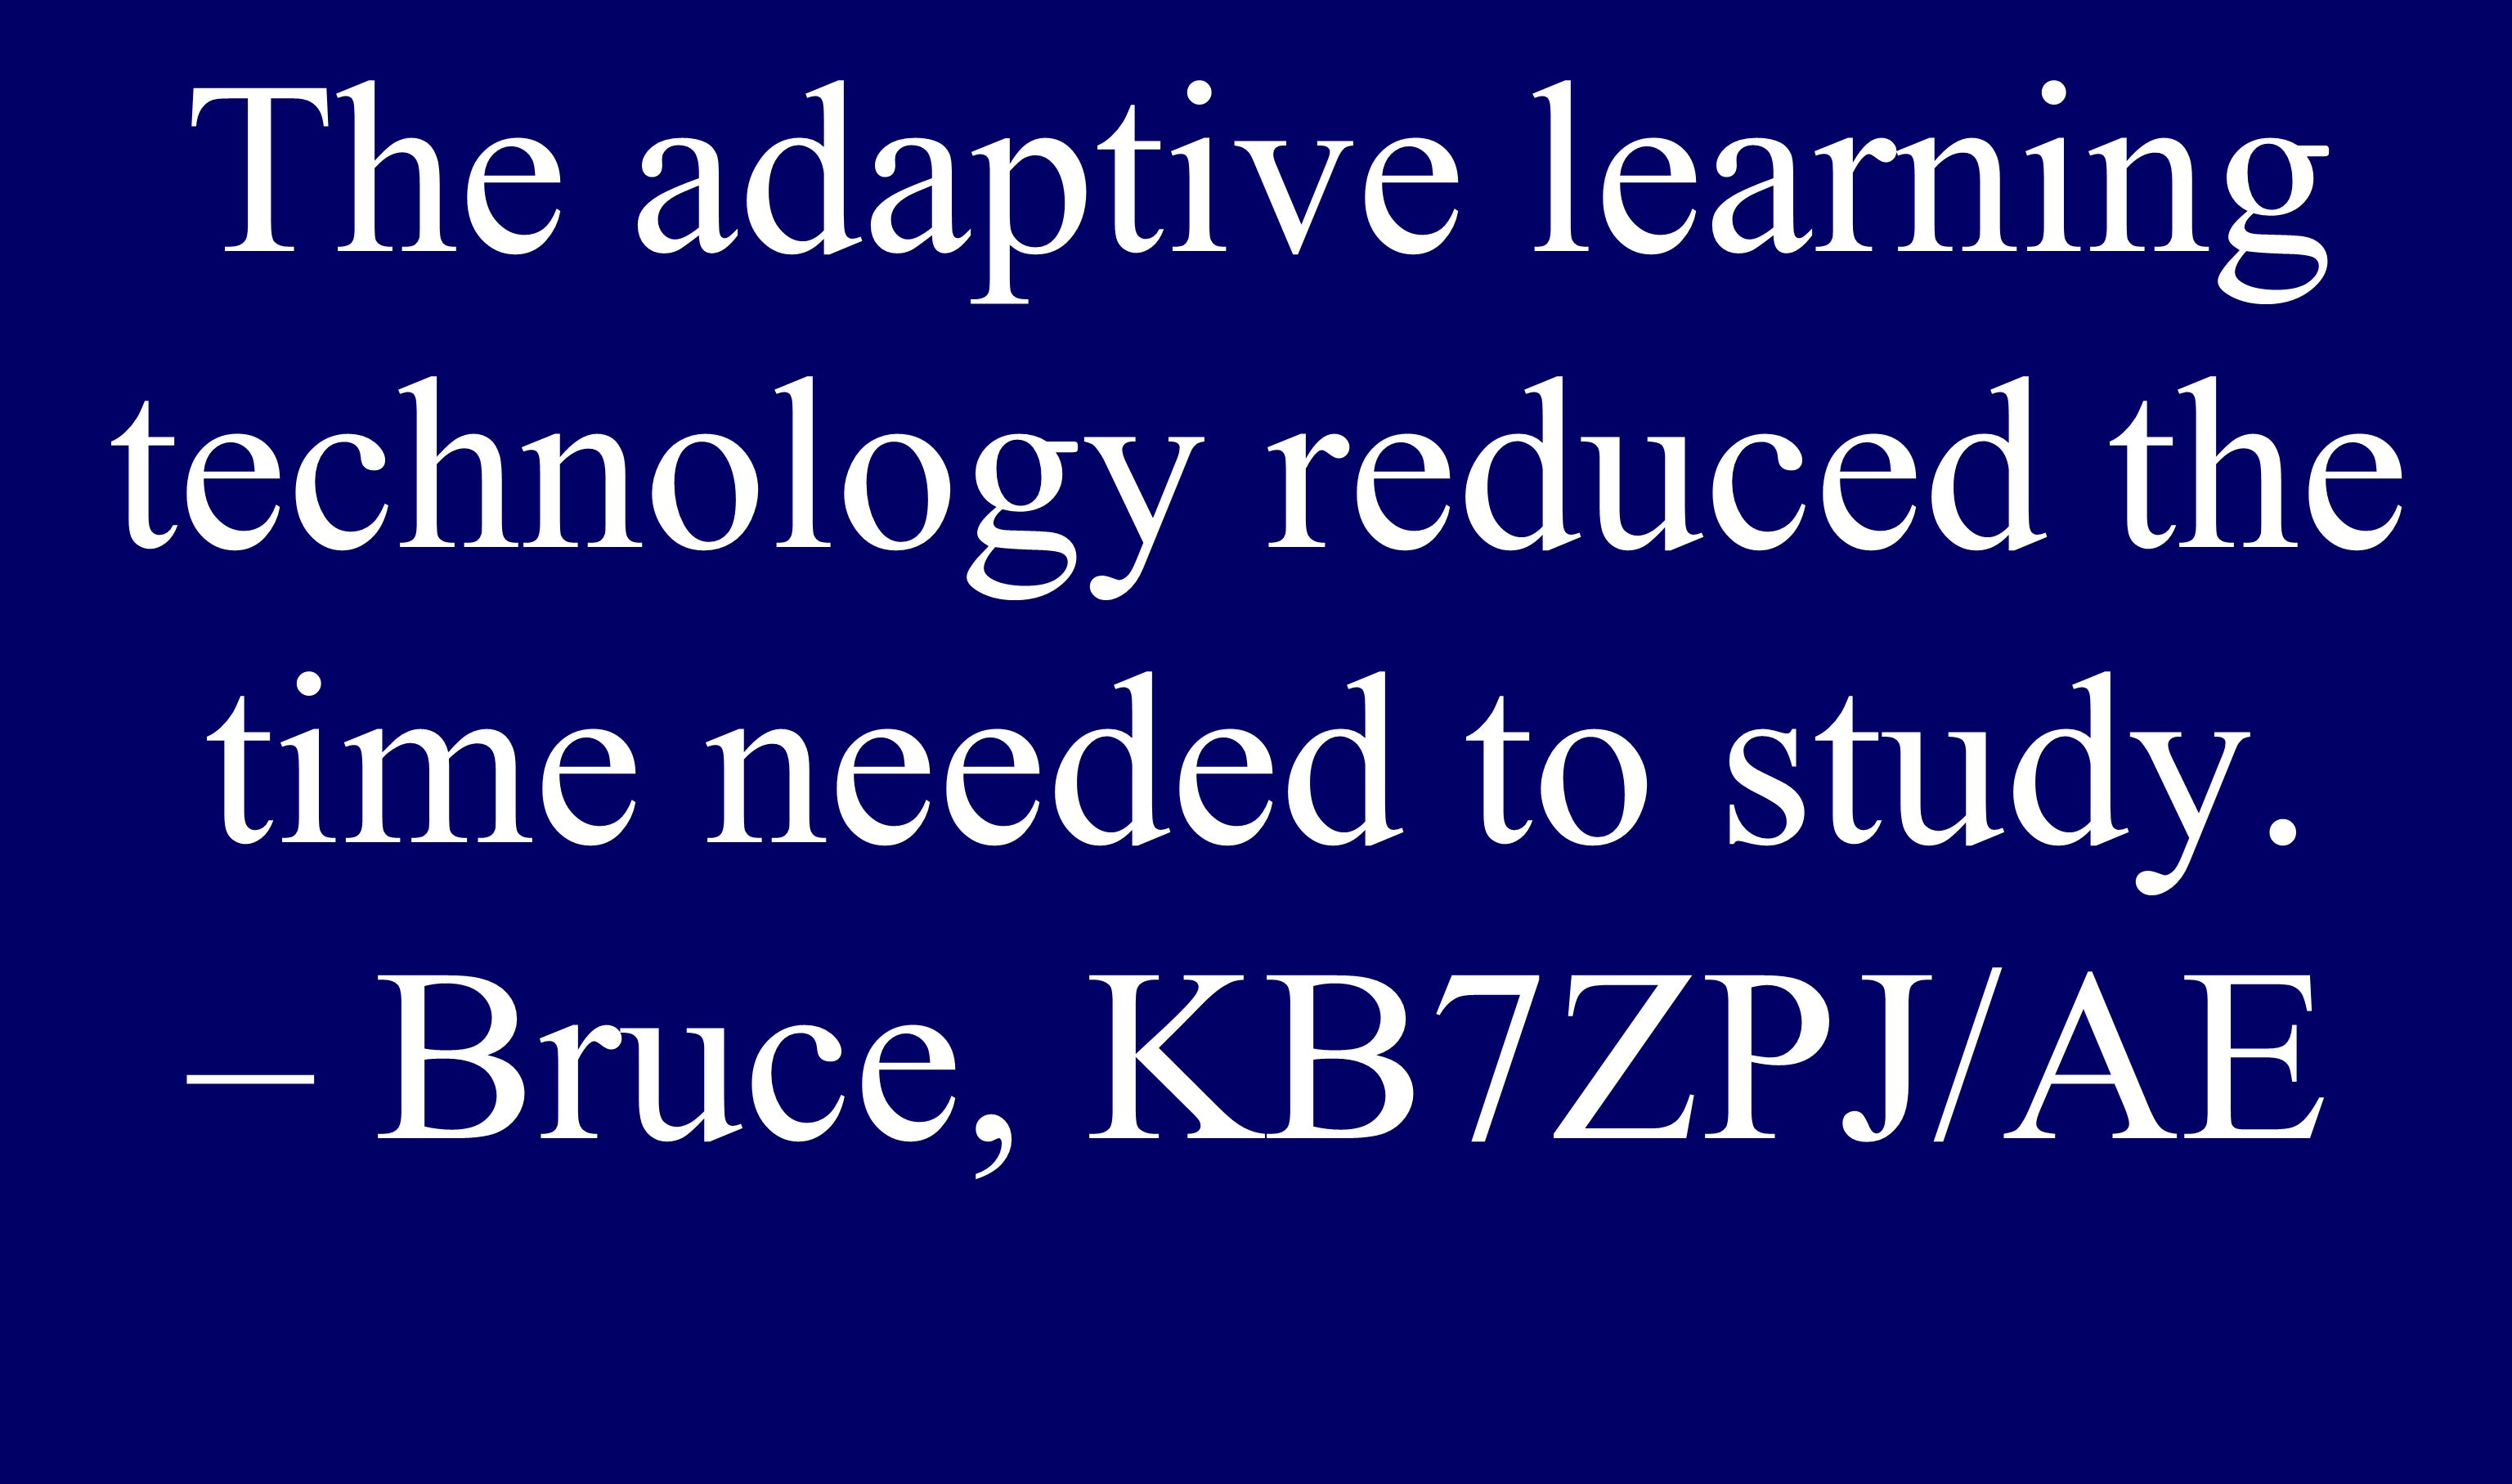 The adaptive learning technology reduced the time needed to study. – Bruce, KB7ZPJ/AE